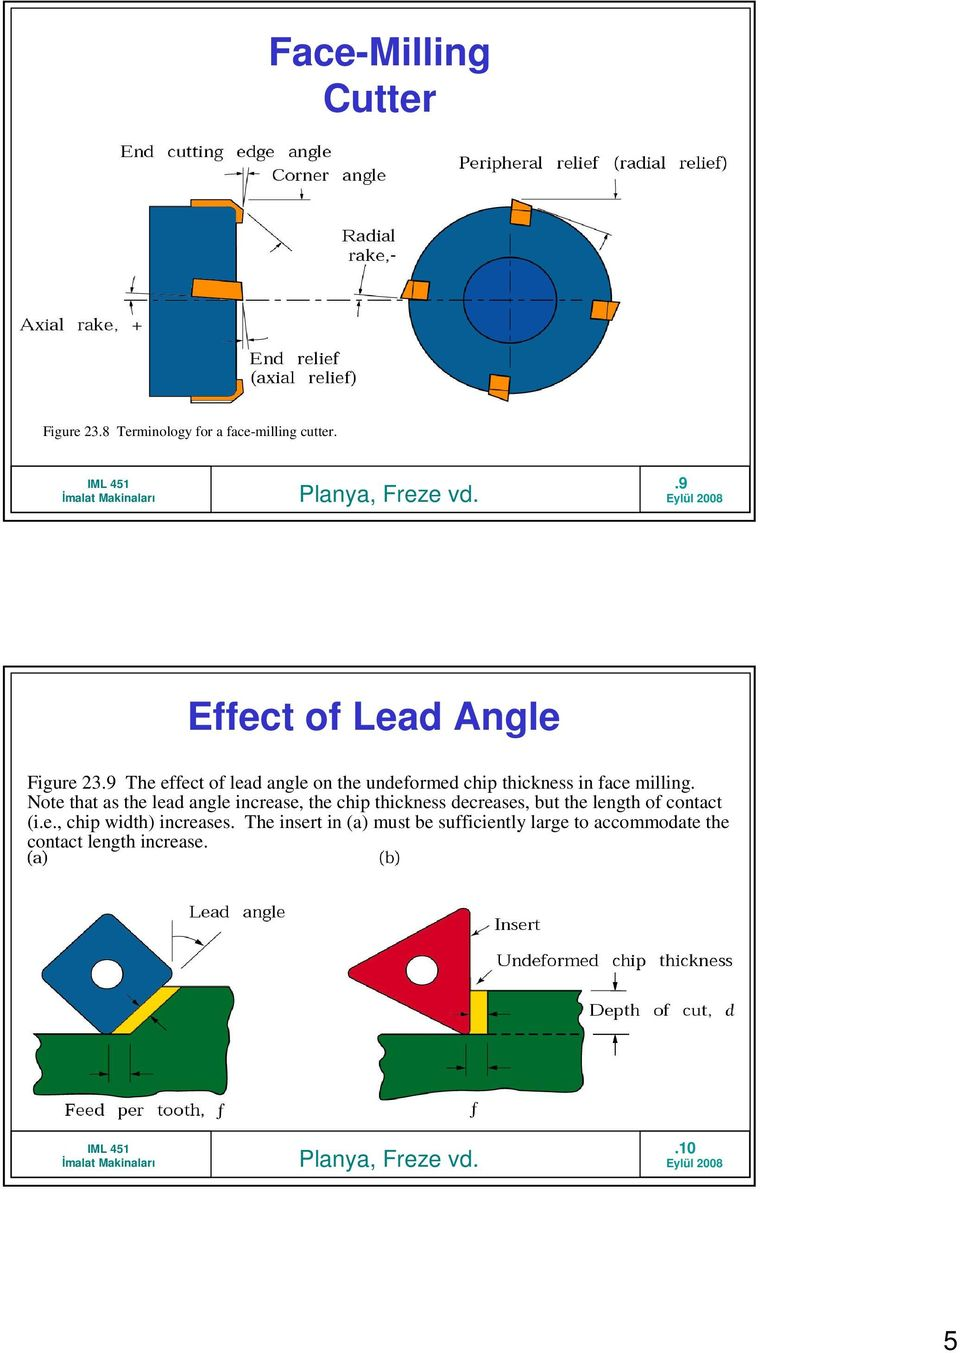 9 The effect of lead angle on the undeformed chip thickness in face milling.